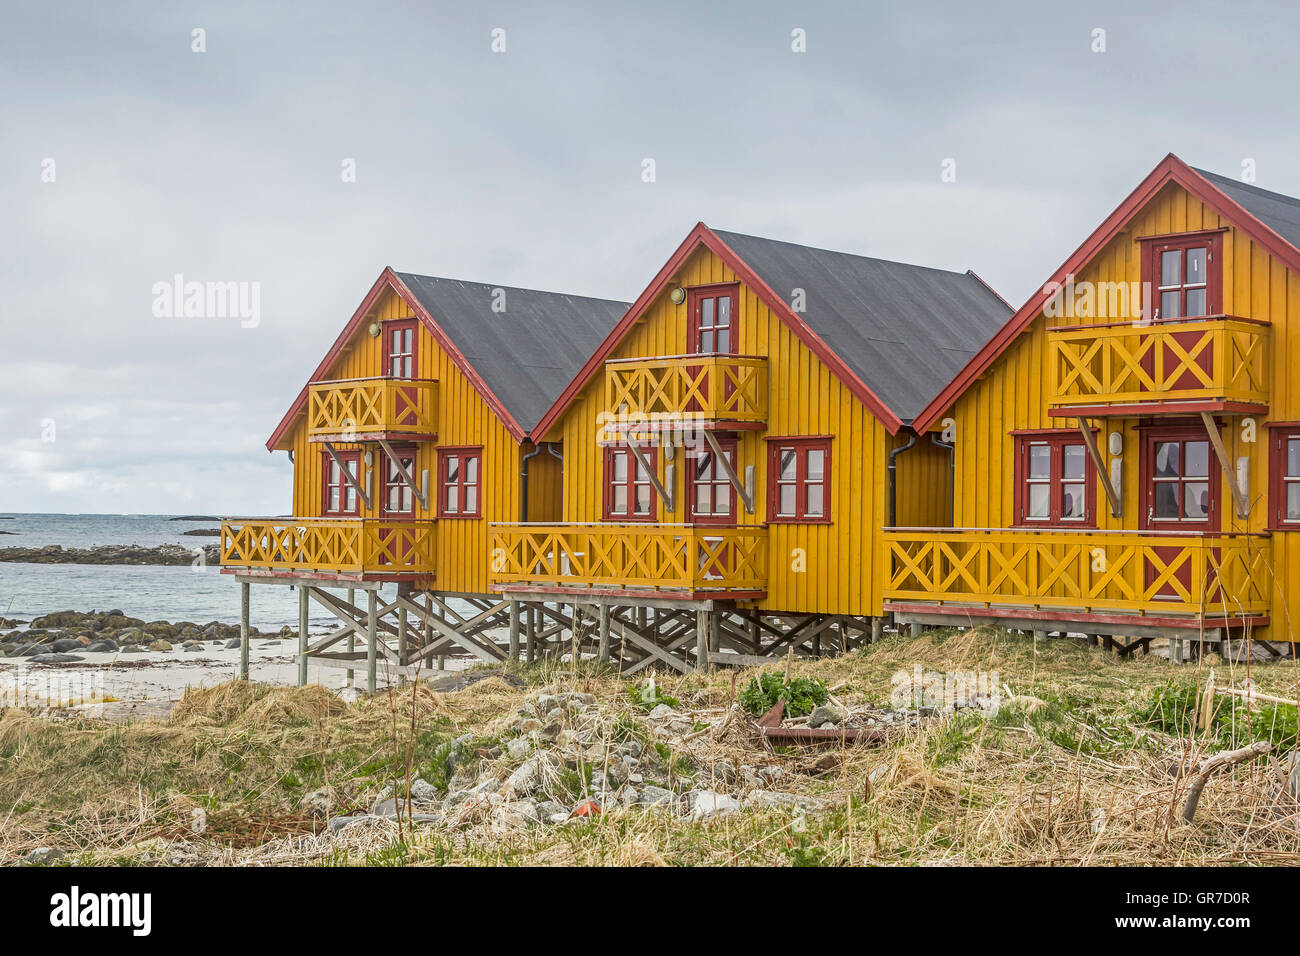 Rorbus Cottages On The Island Andoya Stock Photo